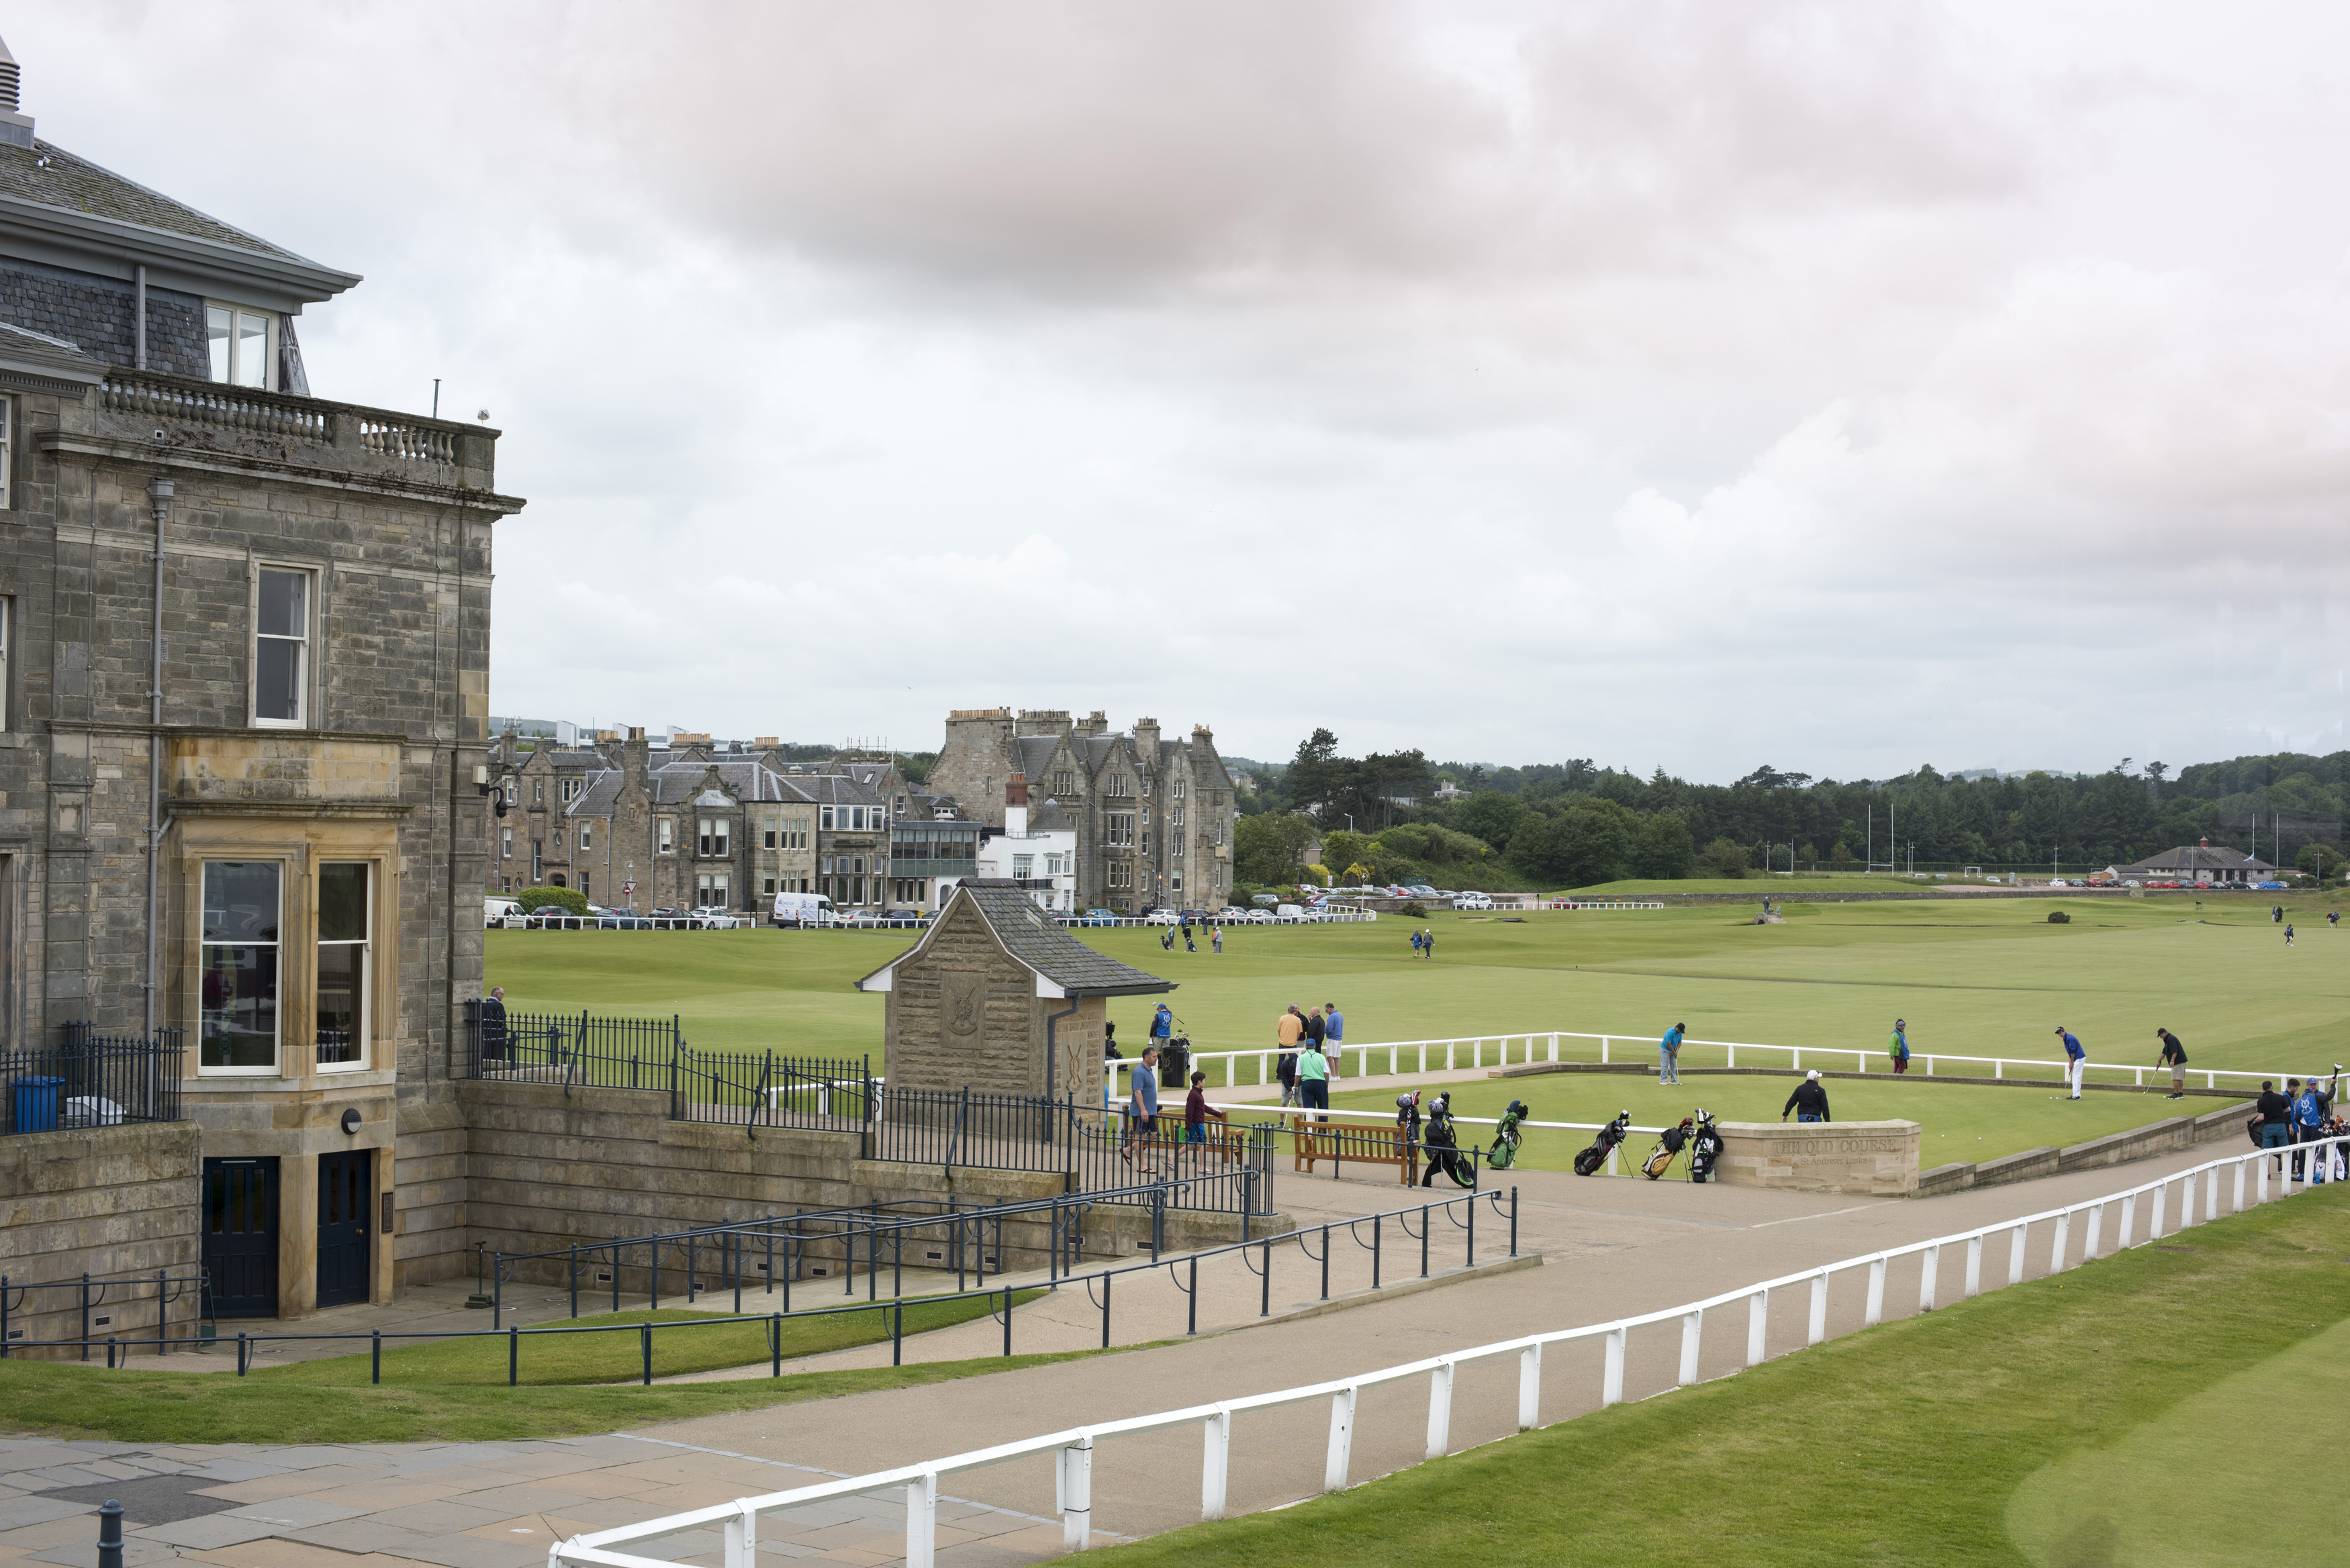 View of white fences and various golfers playing on golf green under overcast sky in Saint Andrews, Scotland